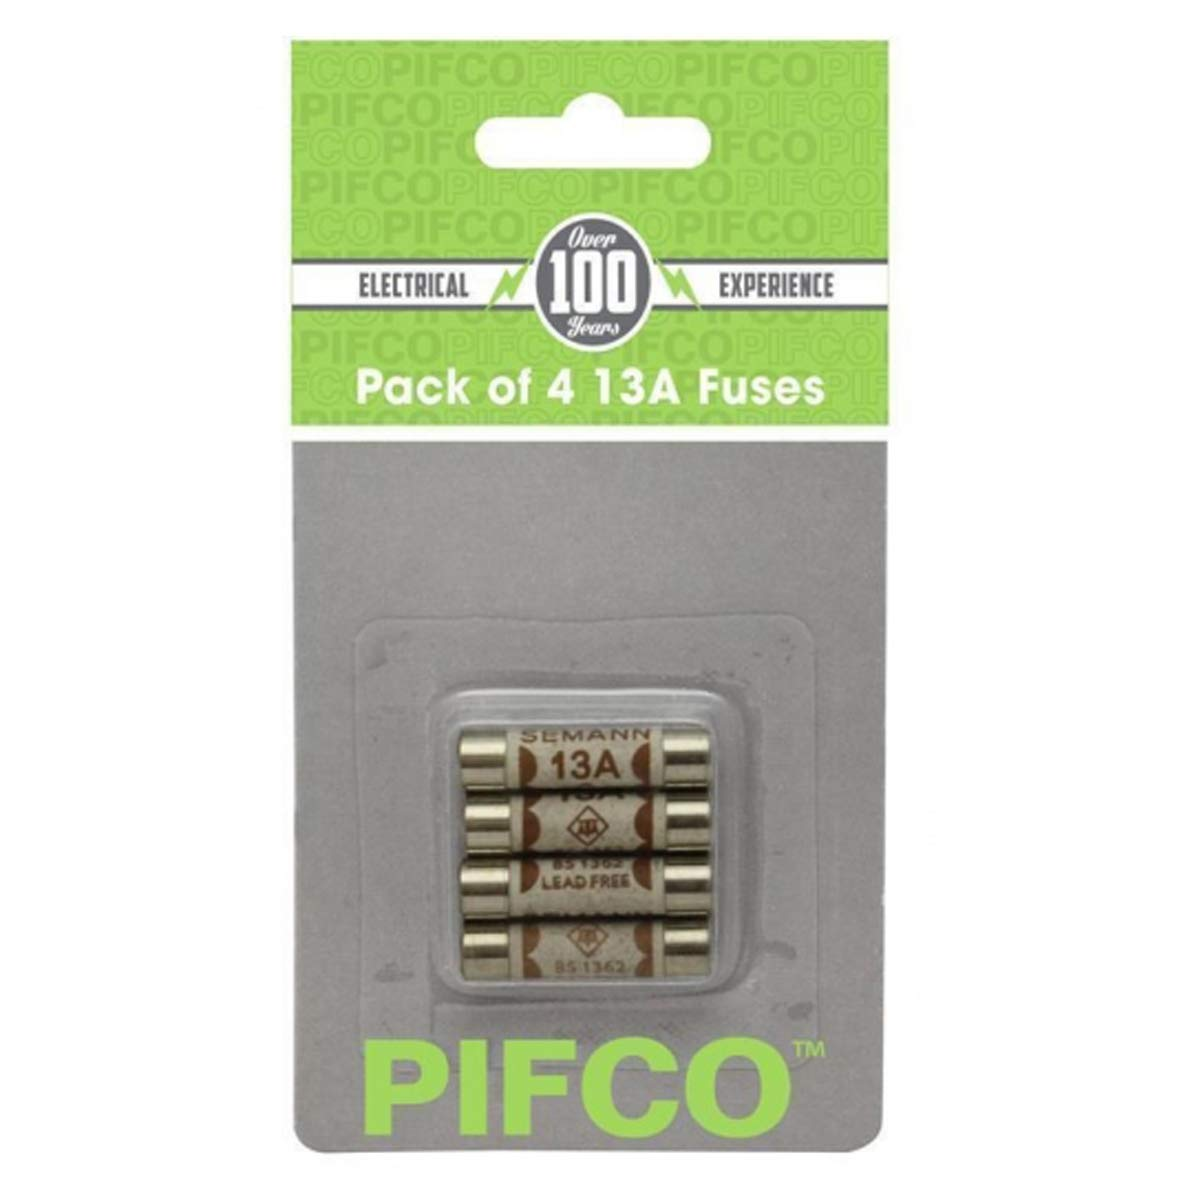 Pifco PIF2042 Ceramic 4x13 AMP Domestic Household Plug Electrical Fuses Pack